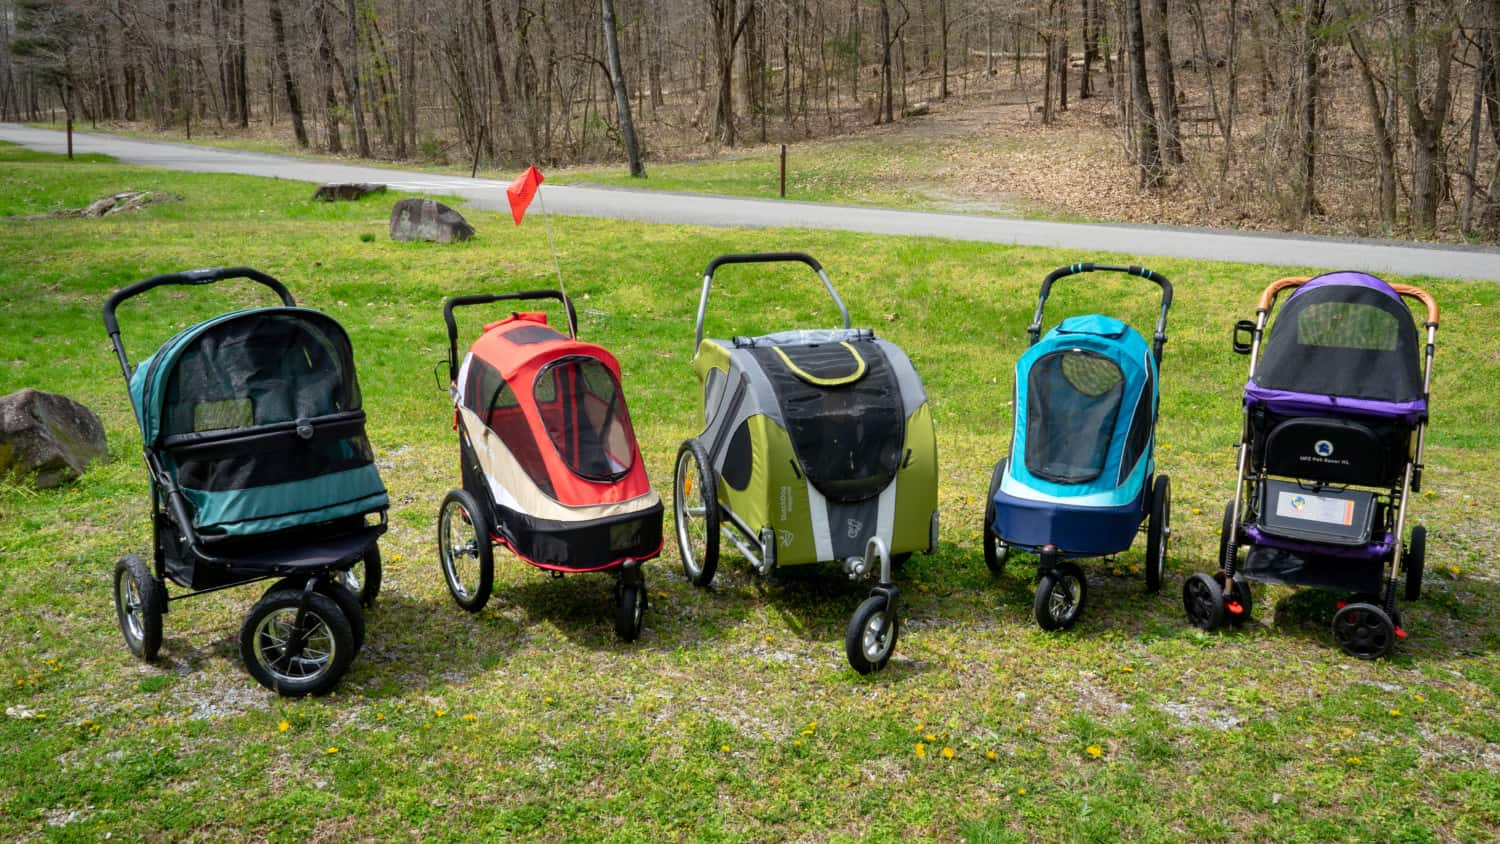 Five dog stroller sitting side by side